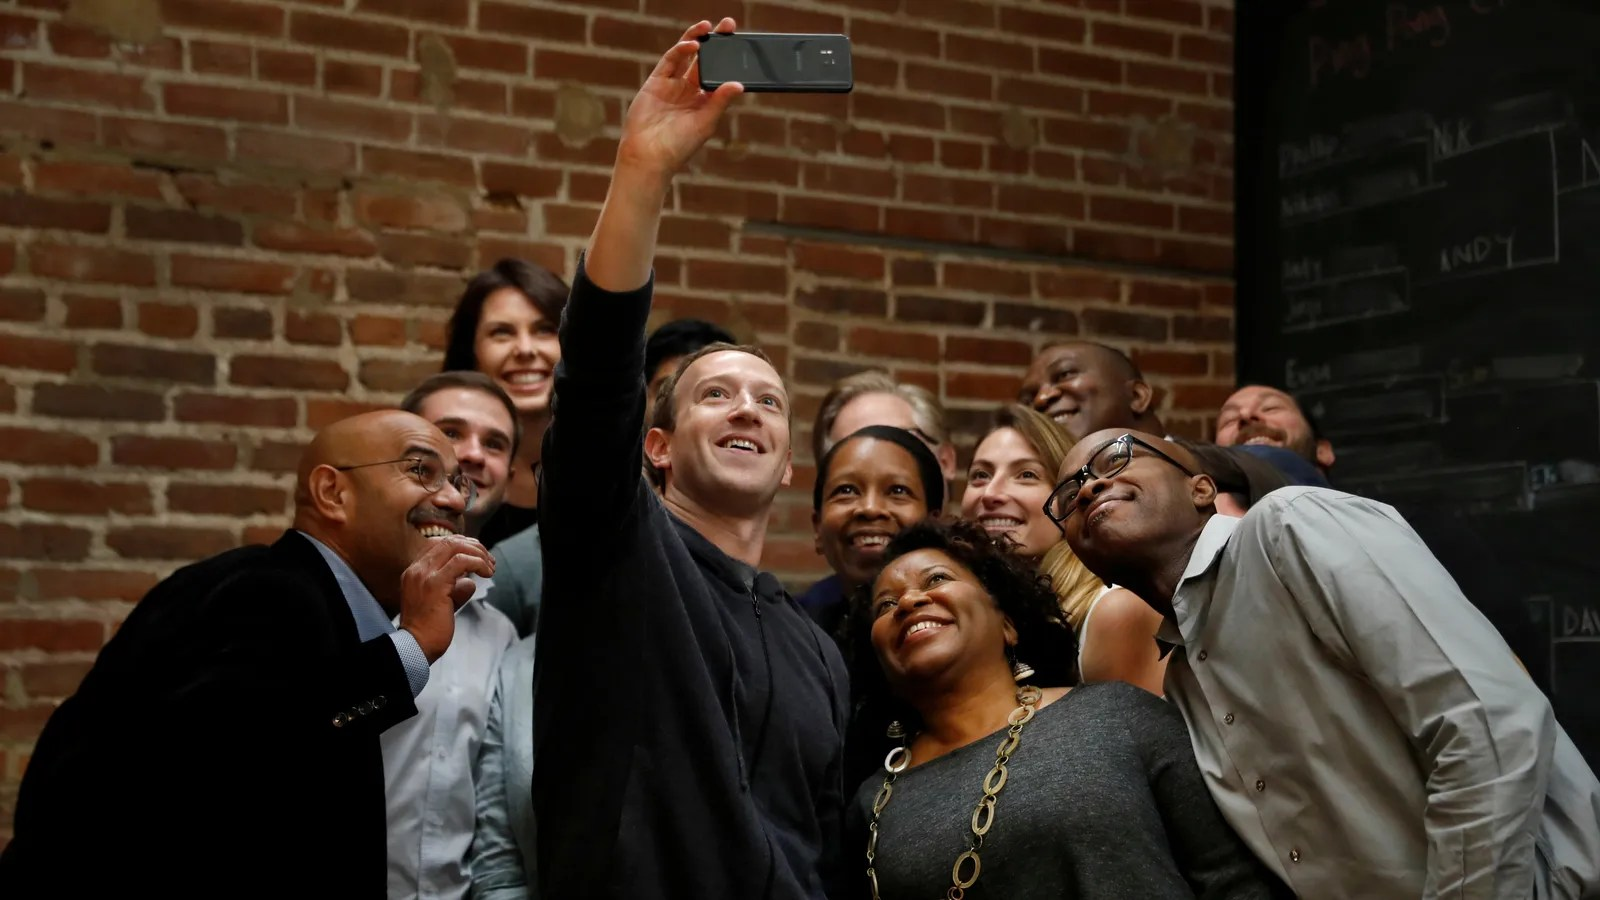 Facebook May Soon Demand A Selfie If It Detects Suspicious Activity On Your Account